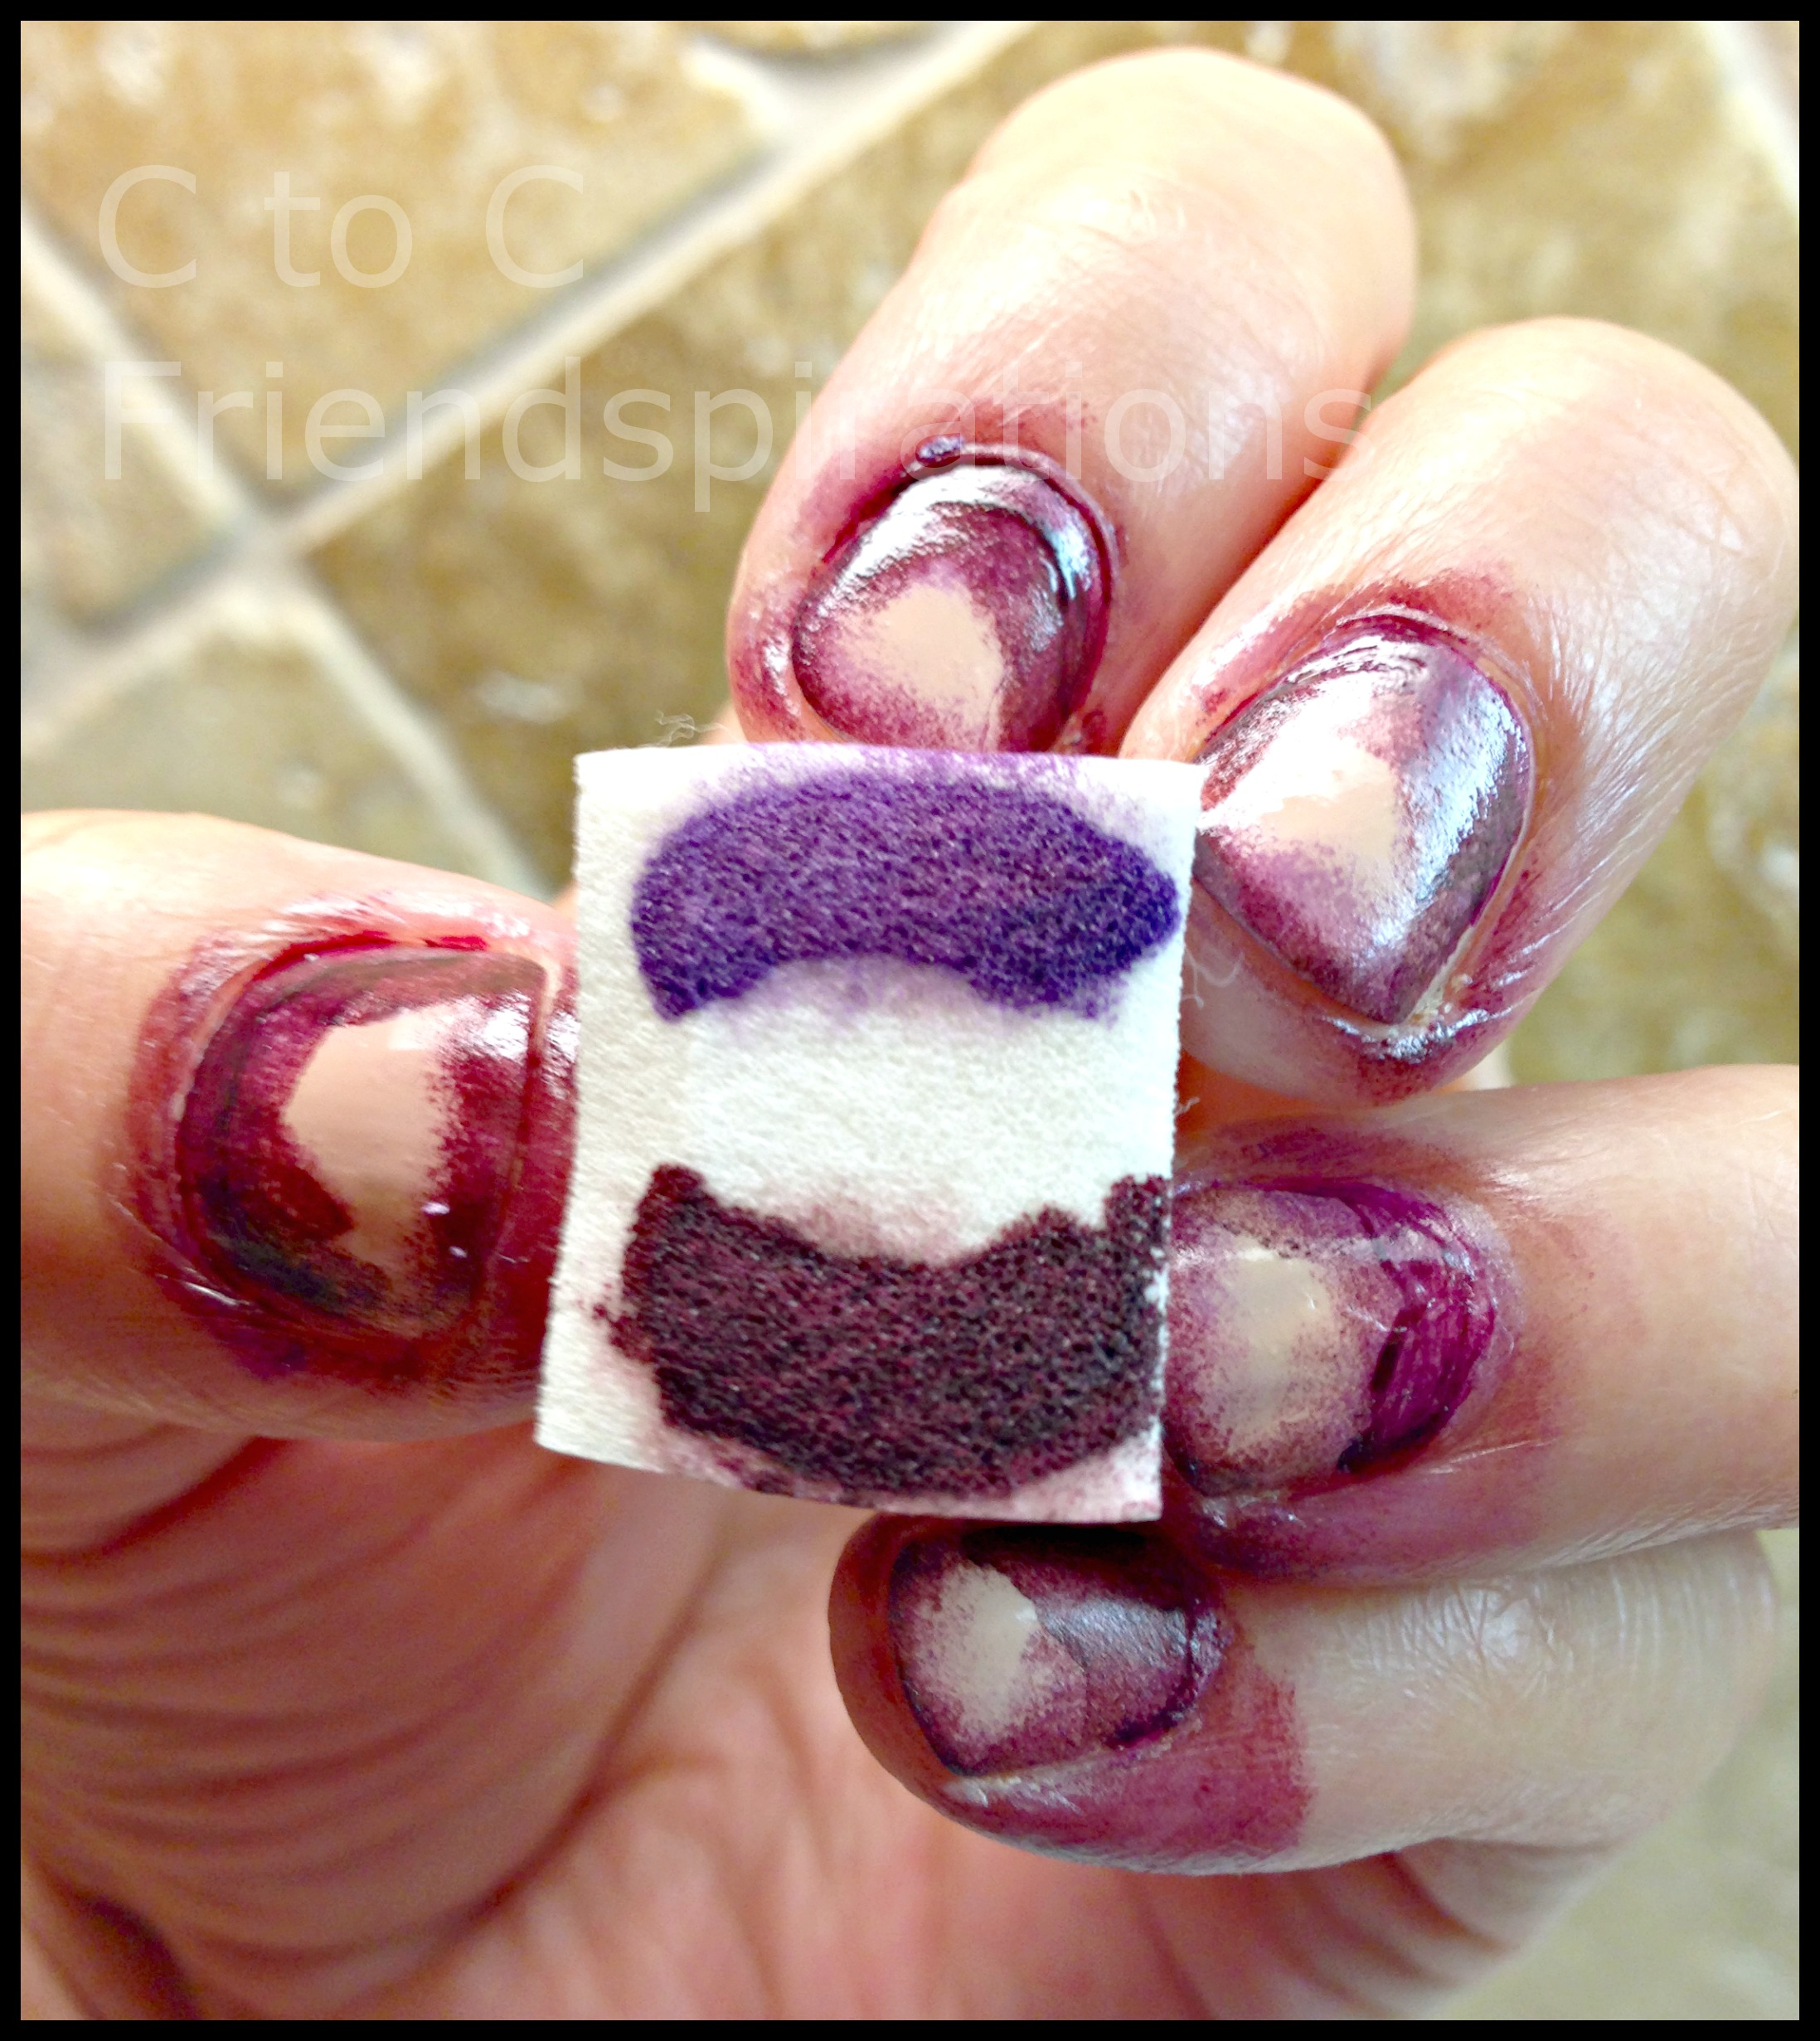 nail art | C to C Friendspirations